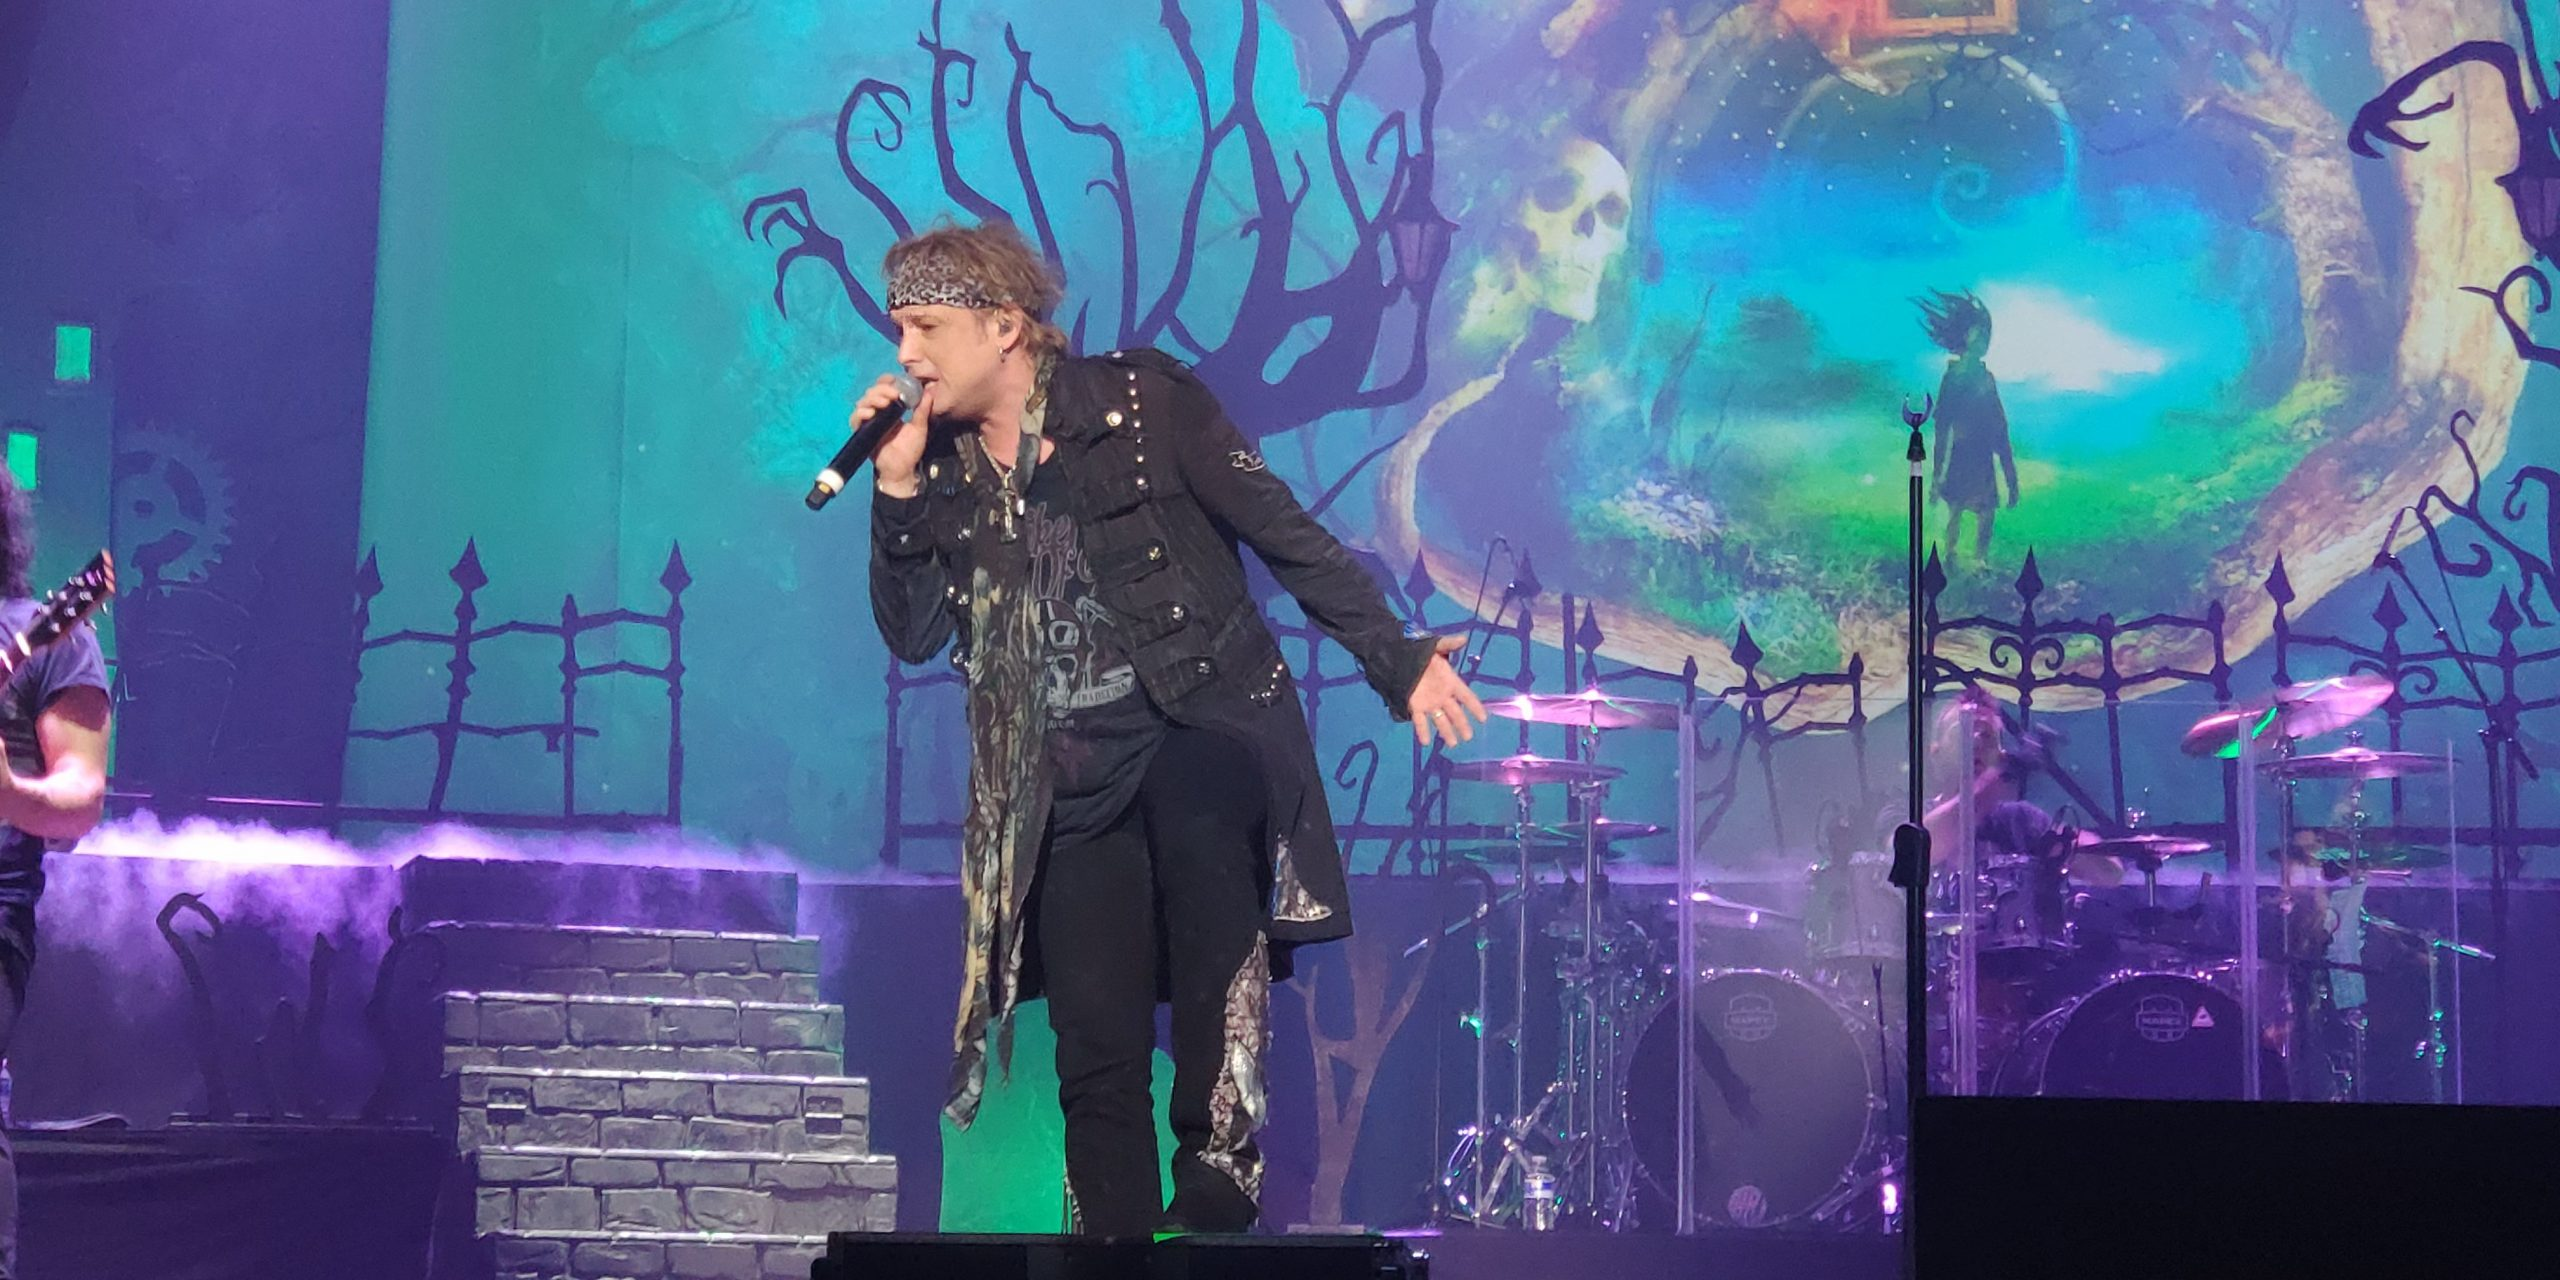 cronica-avantasia-madrid-2019 2